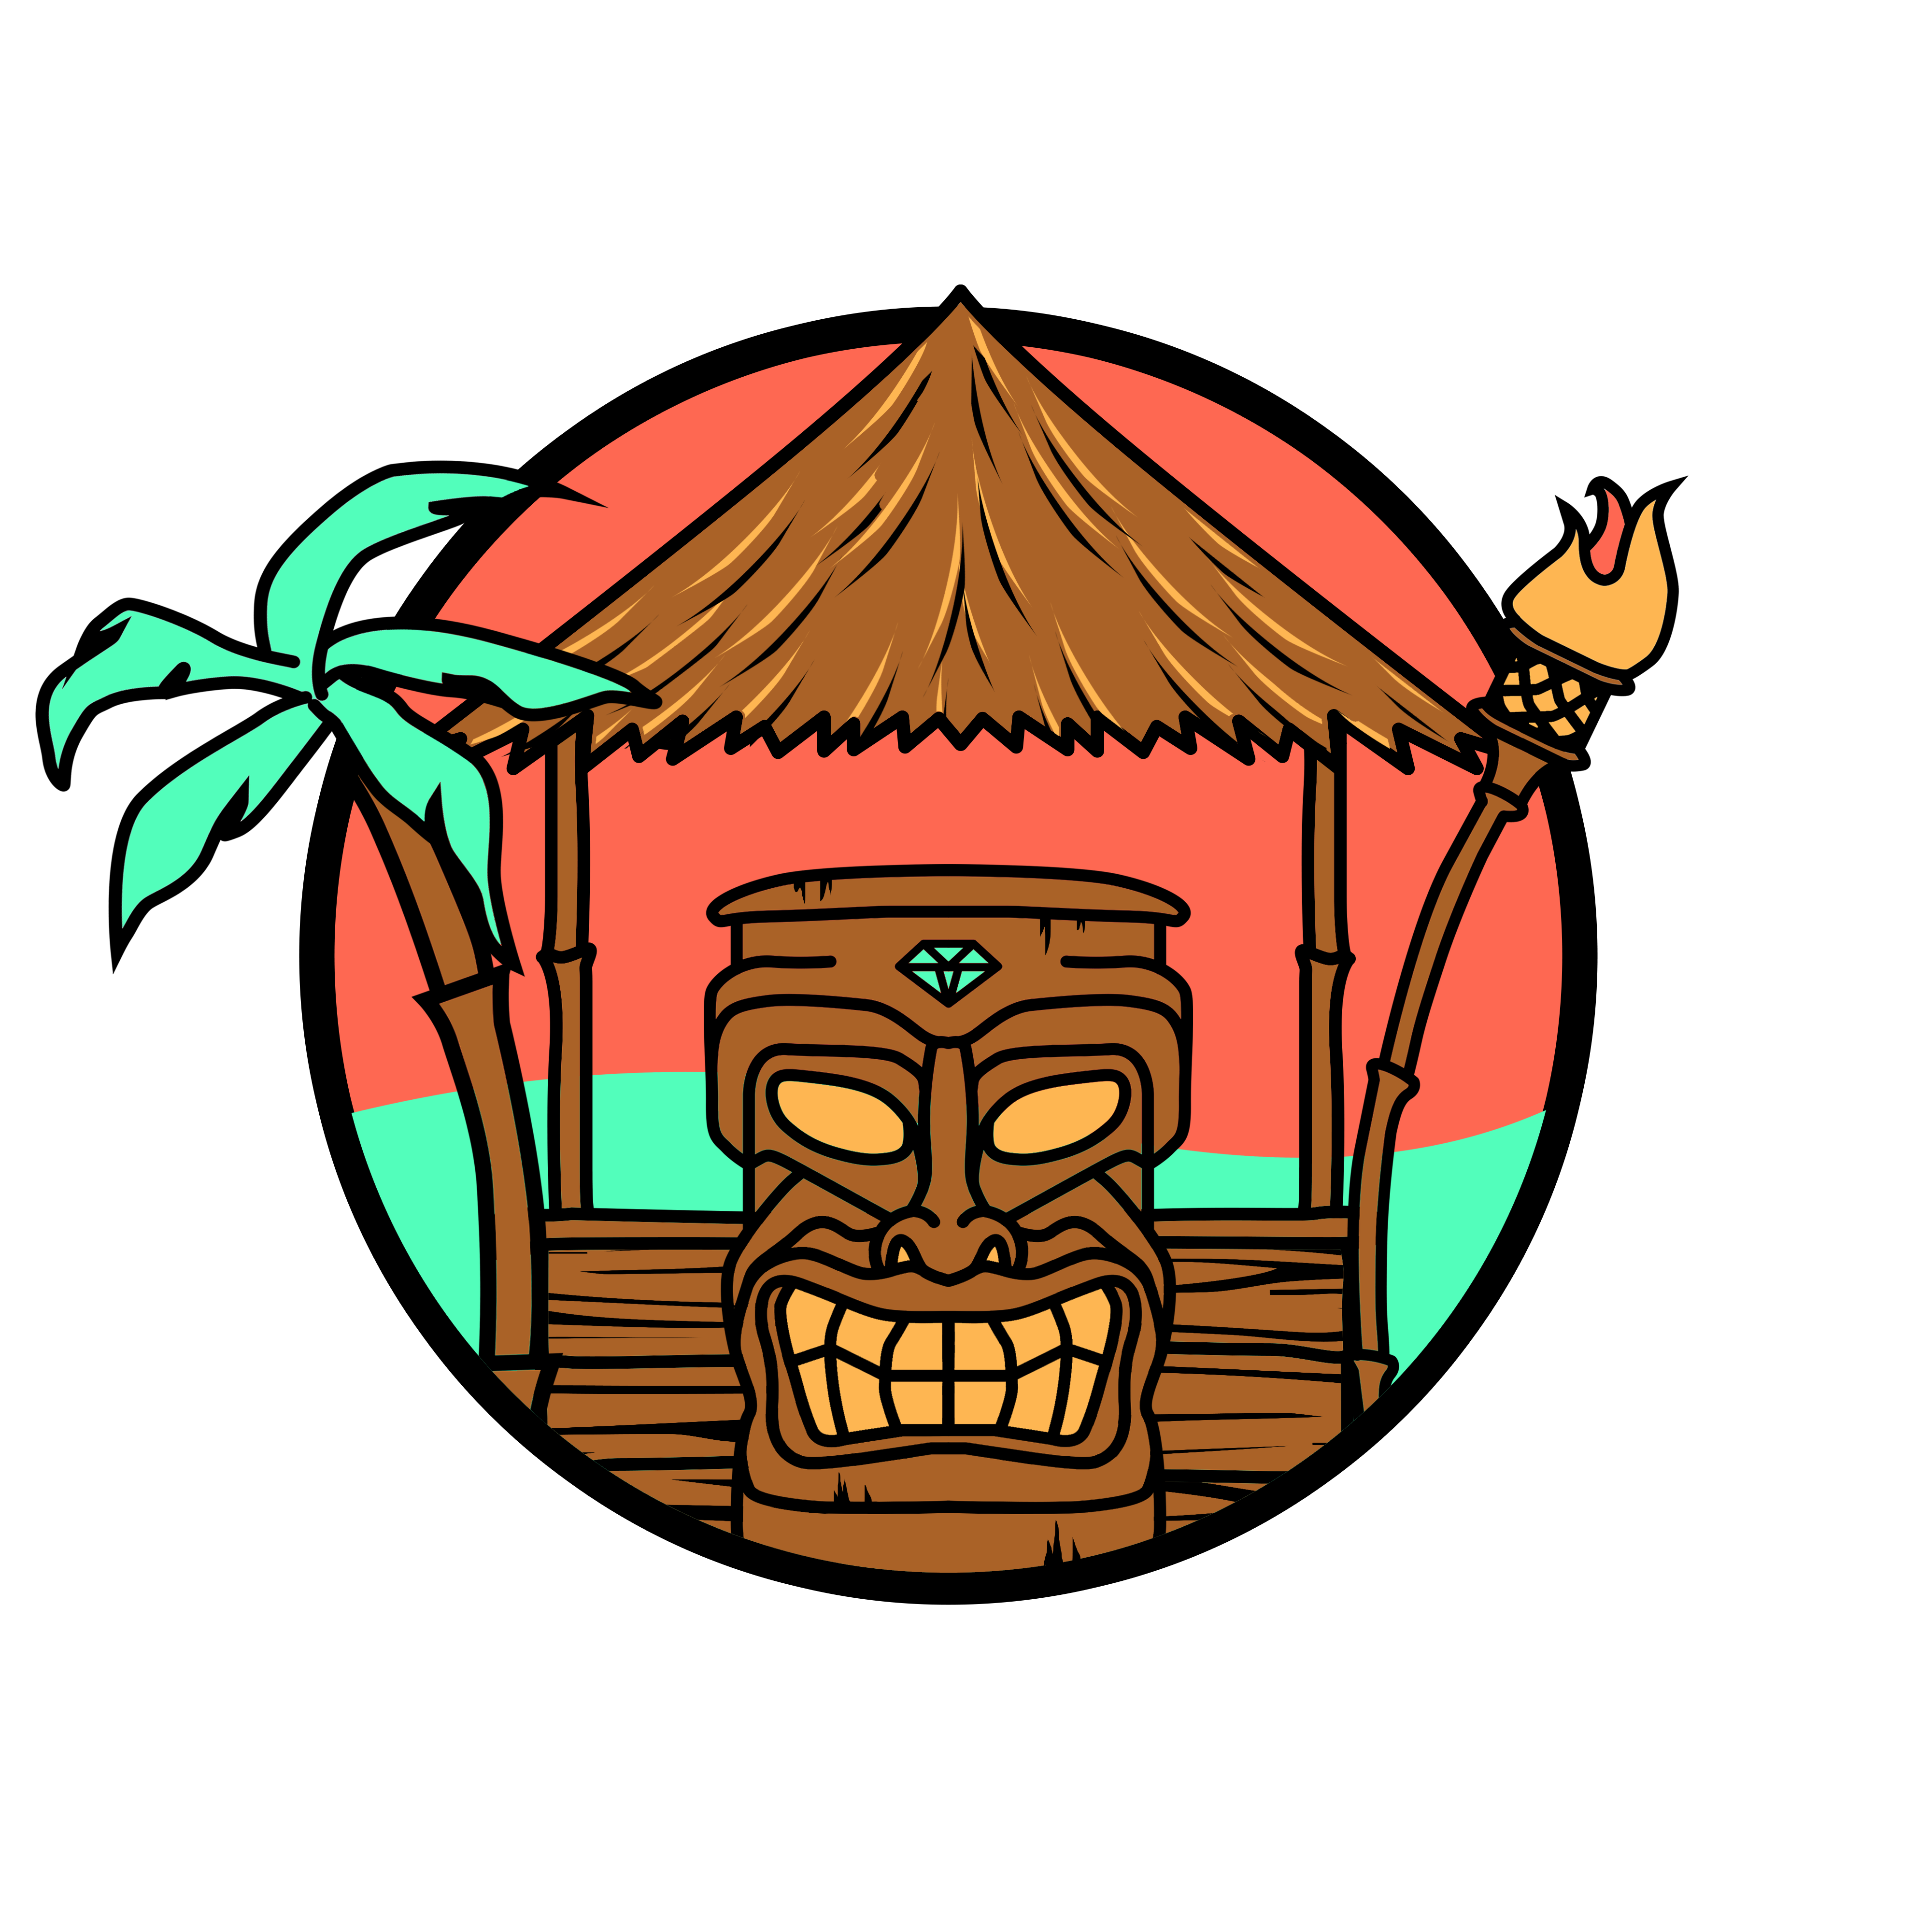 Faces clipart tiki, Faces tiki Transparent FREE for download.